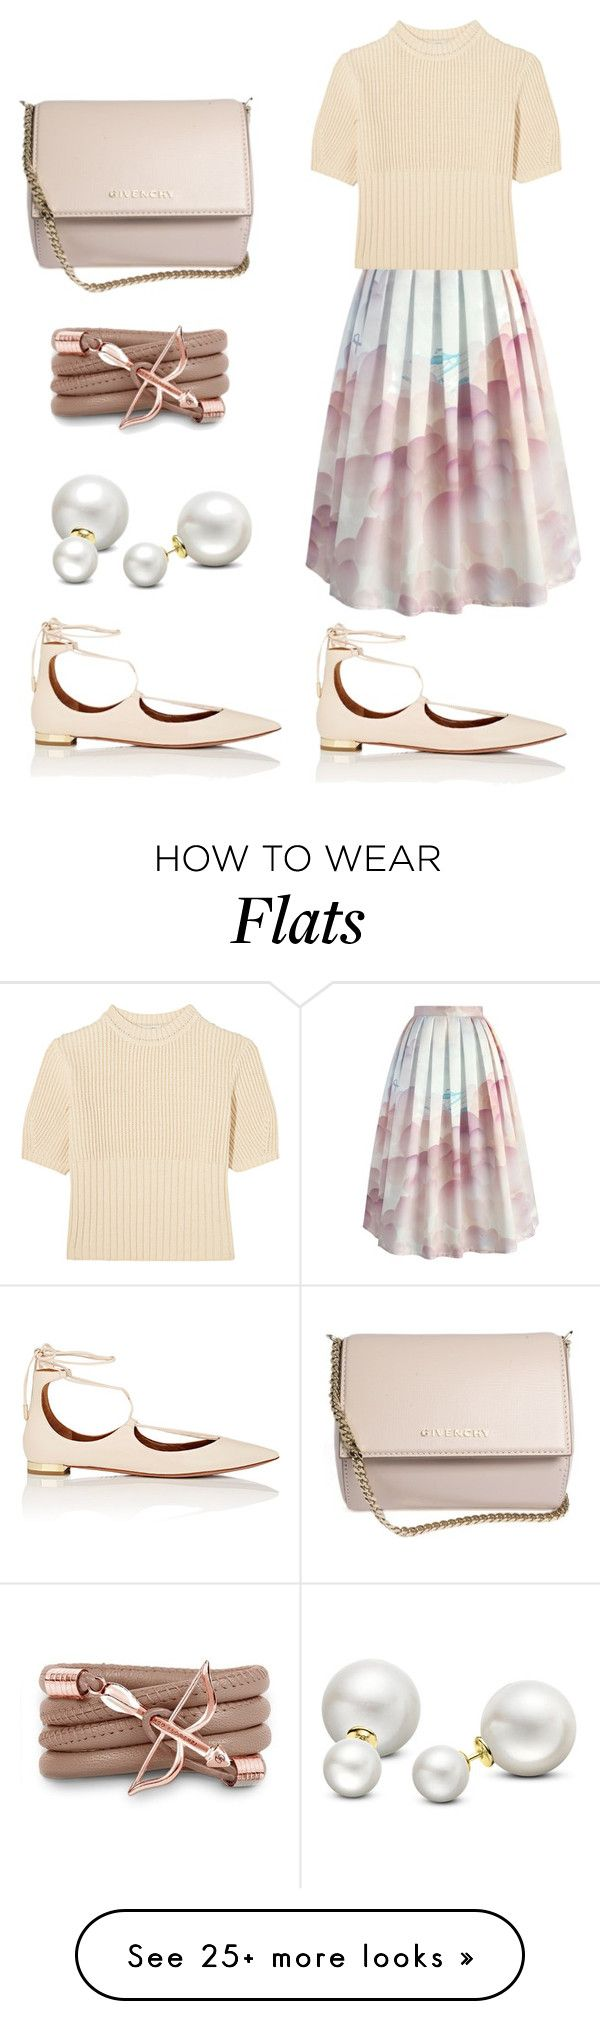 """""""Out for lunch"""" by miki78 on Polyvore featuring Chicwish, Totême, Aquazzura, Monza, Allurez and Givenchy"""